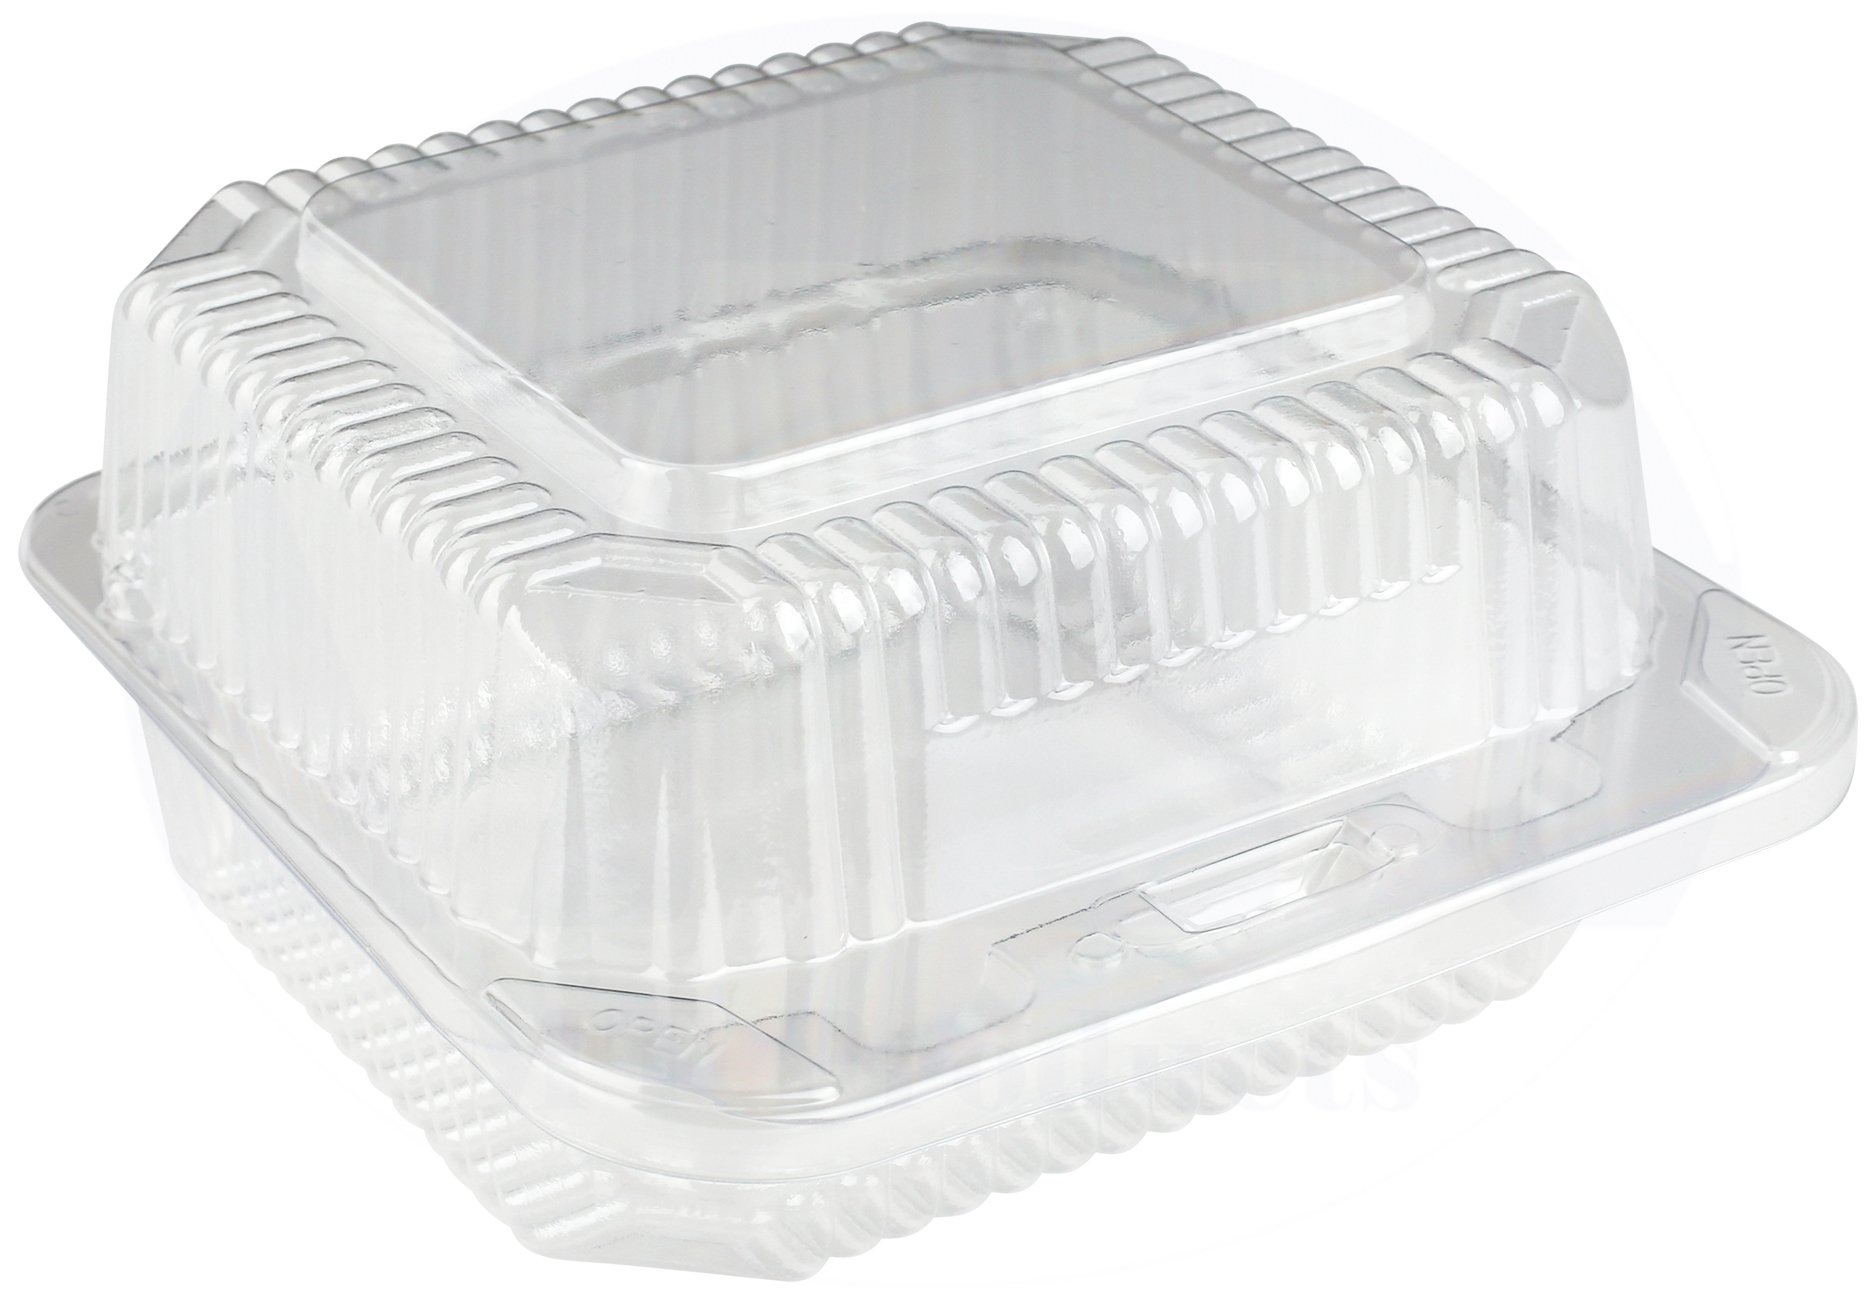 6 Clear Plastic Food Container Art Project Oven